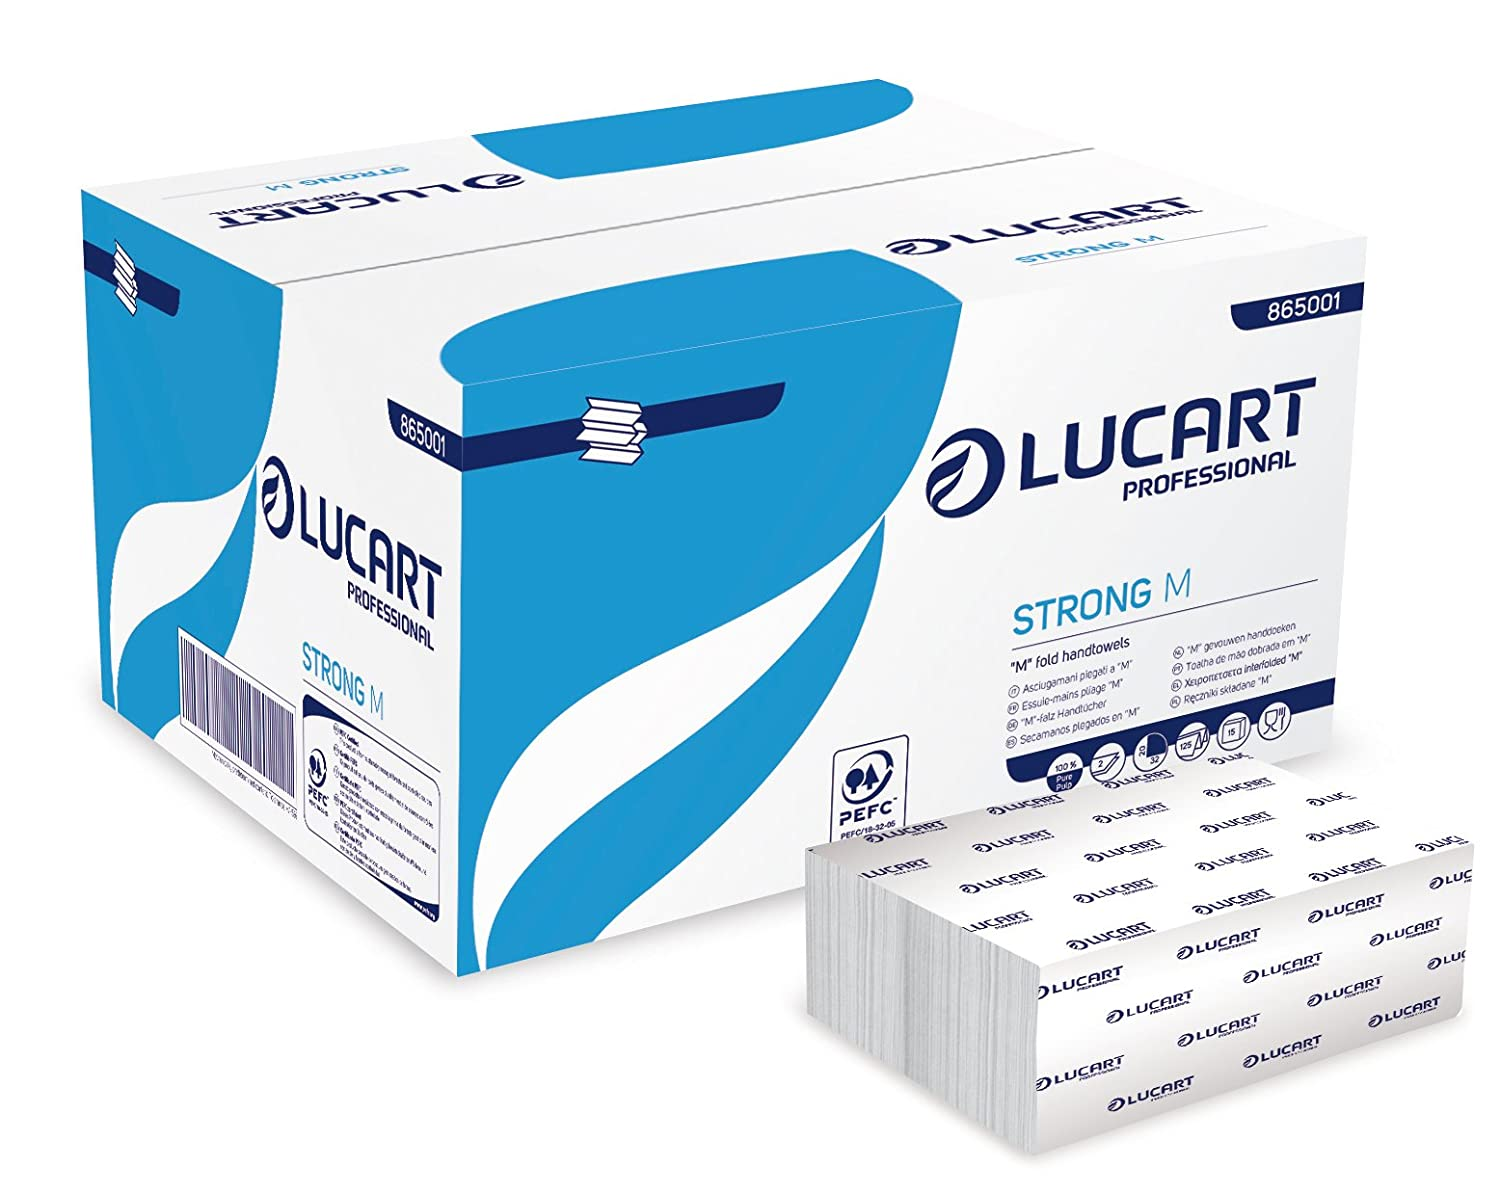 Lucart Professional 865001 Hand Towels, 125 M-Fold, Strong M (Pack of 1875) Novatissue SAS